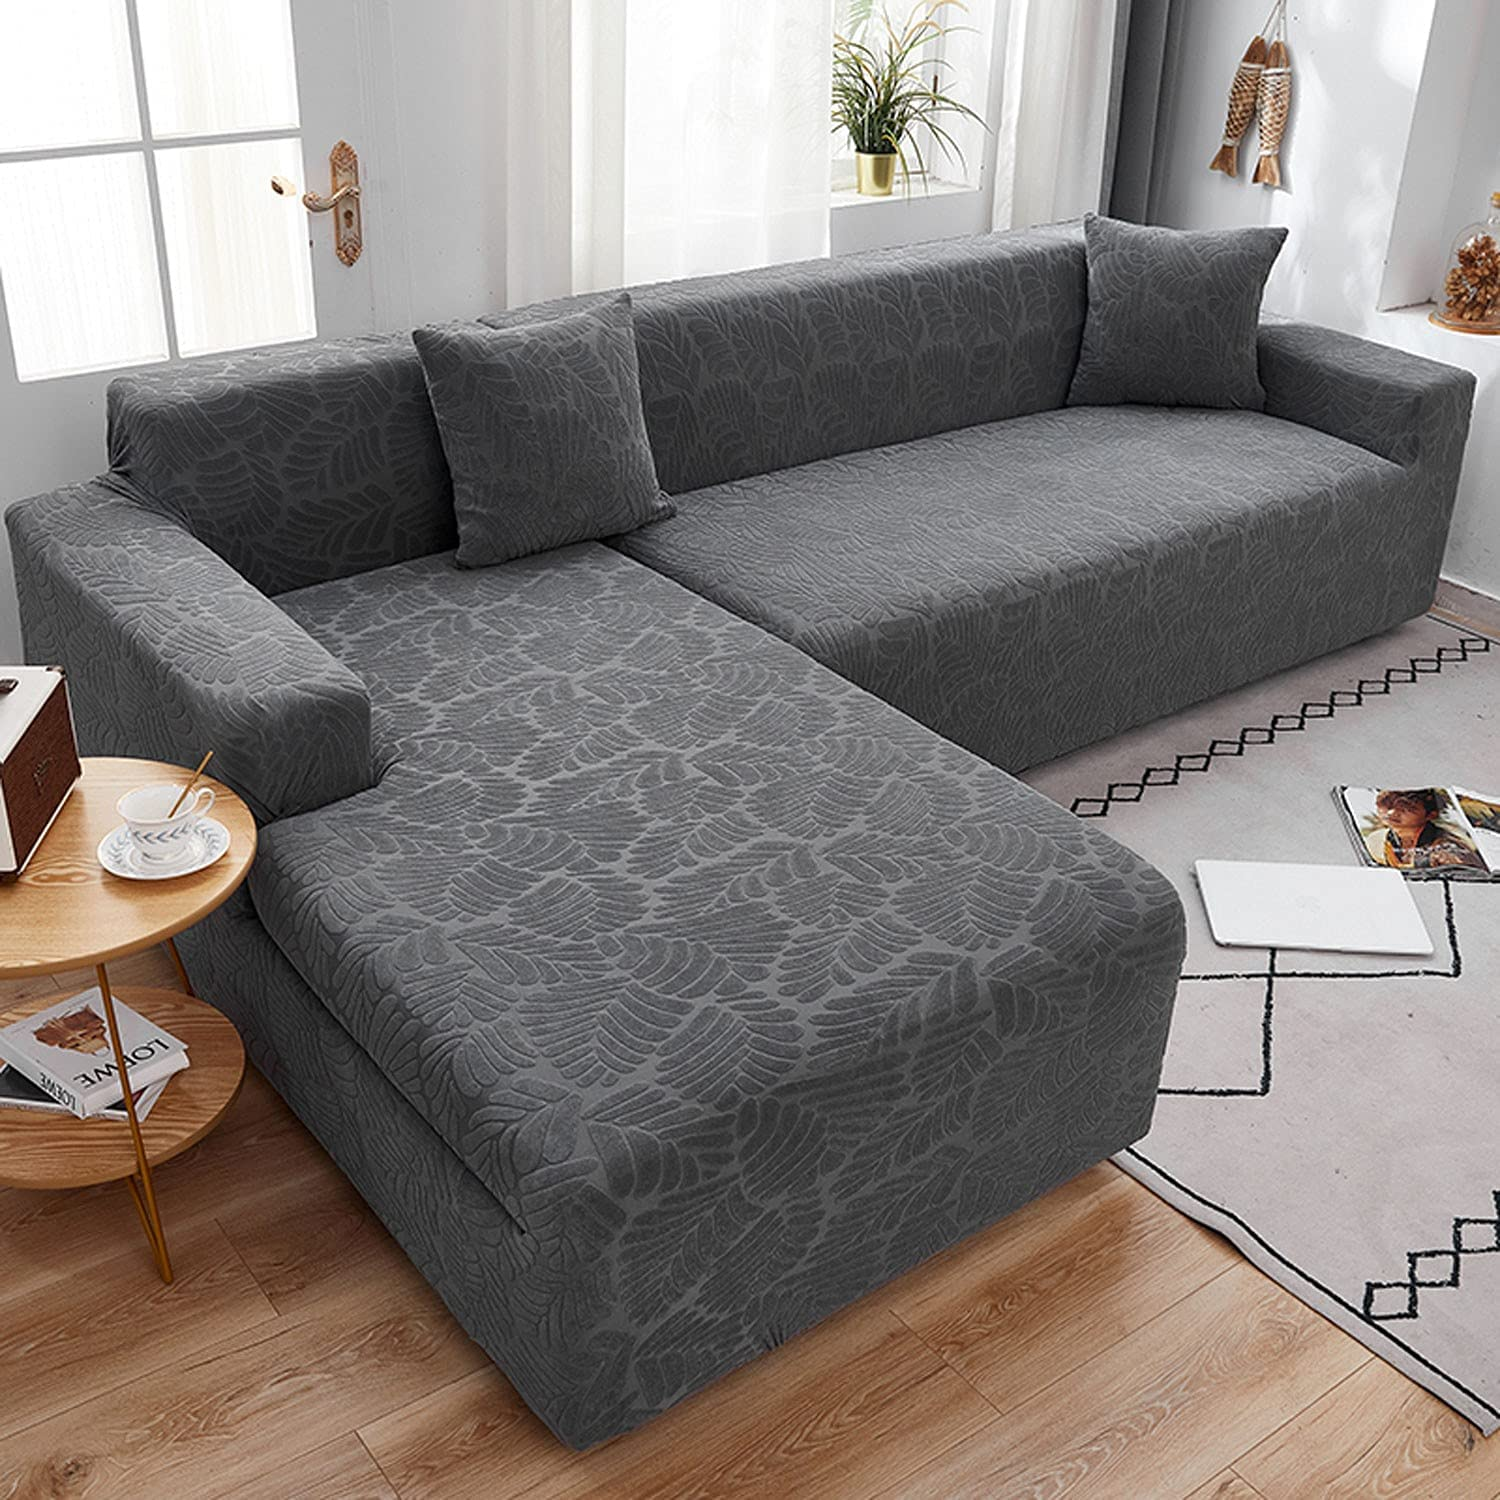 2 Pcs In a popularity Sectional Couch Covers L Shaped Sofa Roo Free shipping Living for